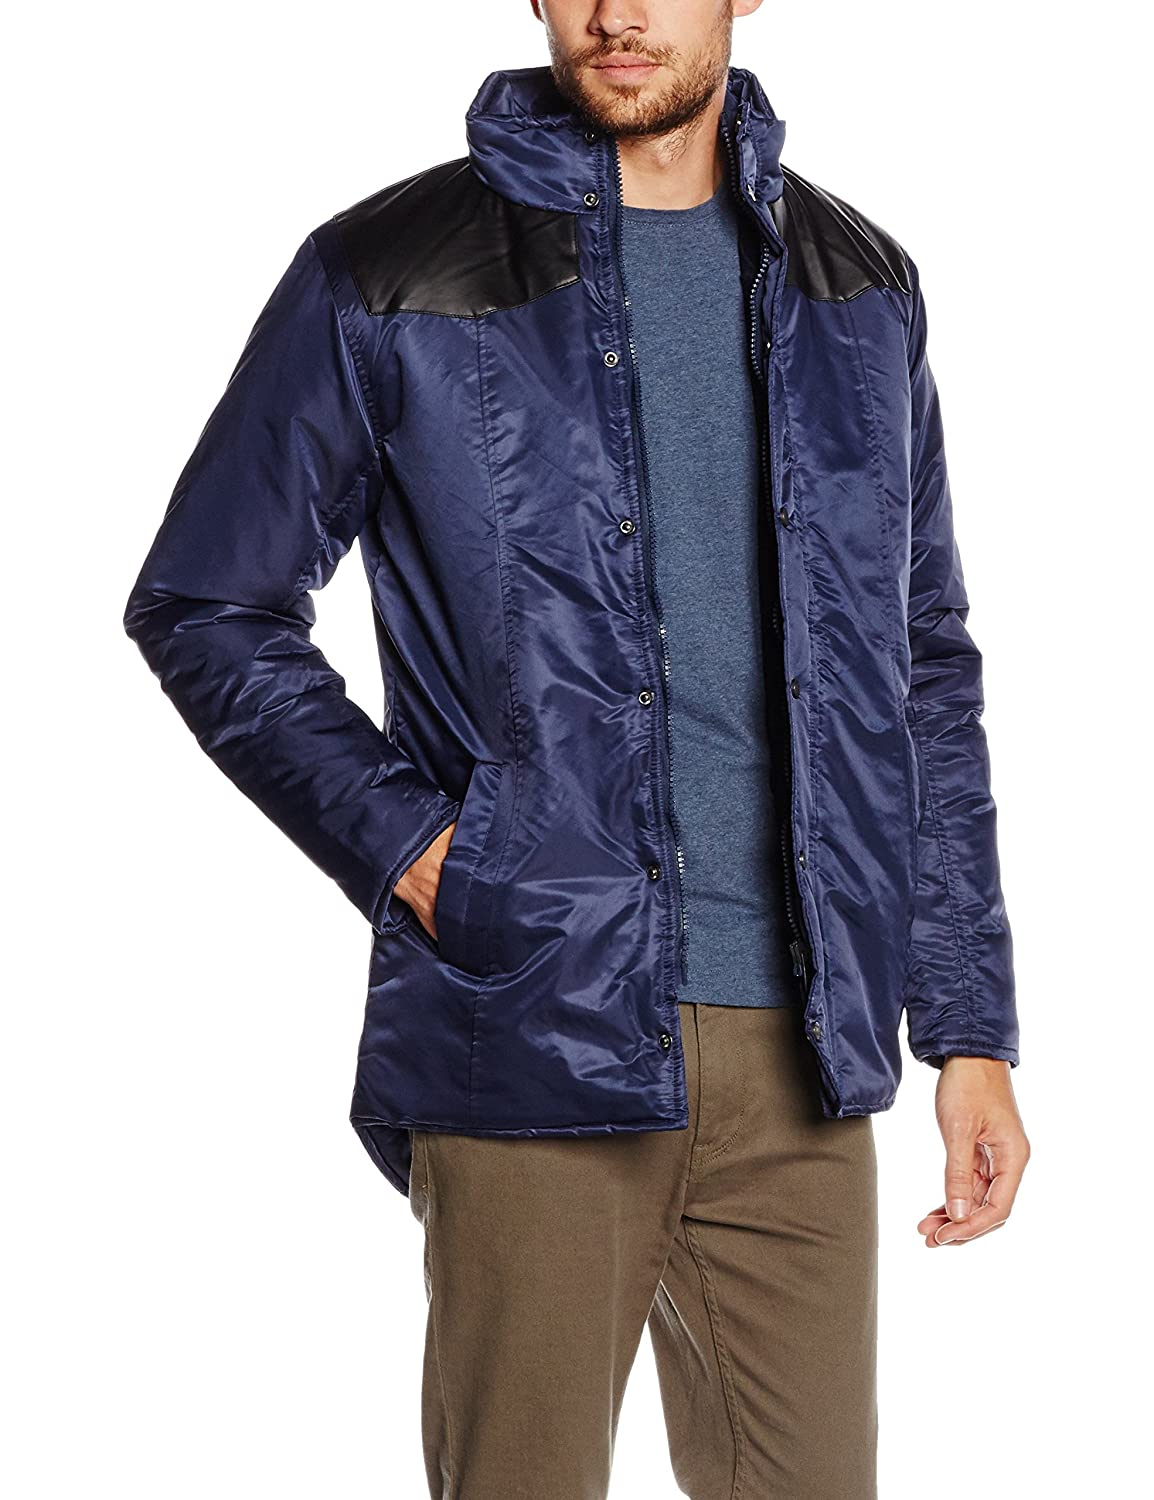 HOPE'N LIFE Men's Vasher Jacket